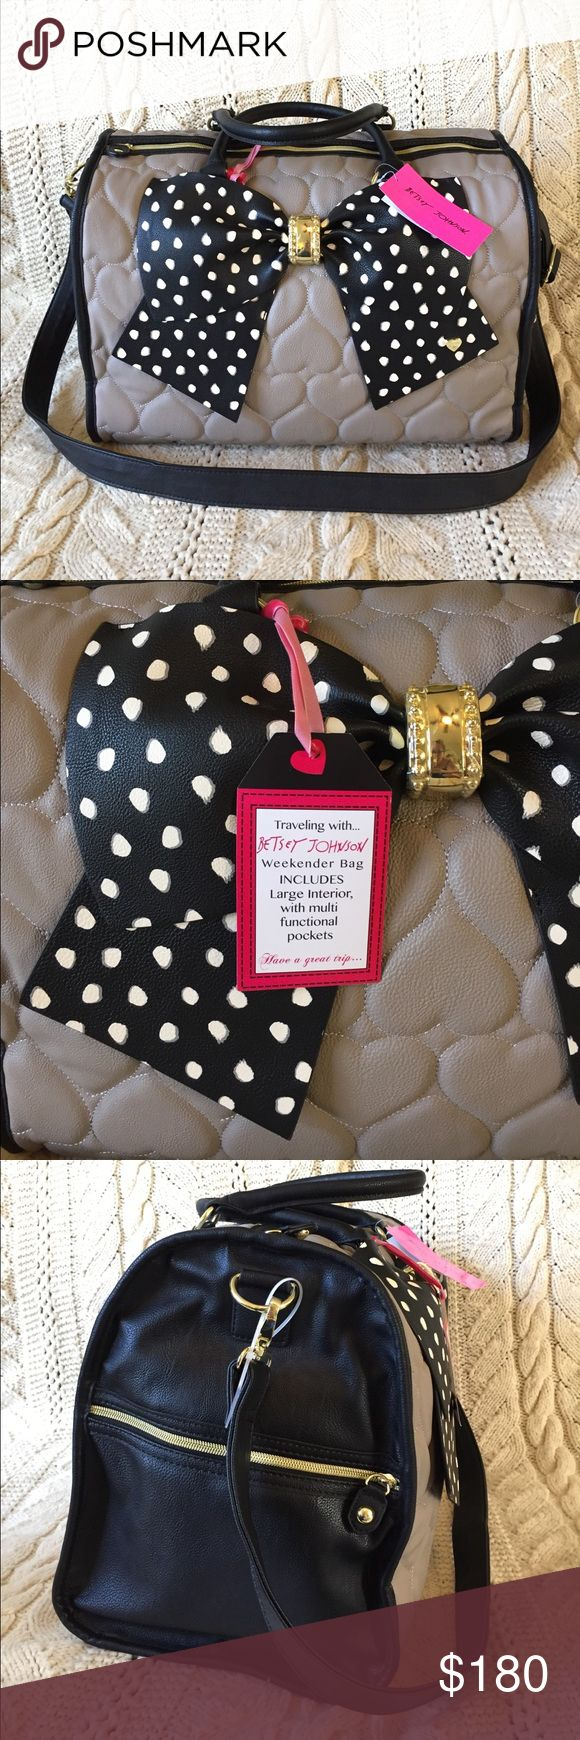 """Betsey Johnson heart quilted bow weekender duffel Super cute Betsey Johnson tan/gray heart quilted big bow weekender duffel.  Measures 18""""Lx12.5""""Hx9.5""""W, strap is adjustable.  NWT! Betsey Johnson Bags Travel Bags"""